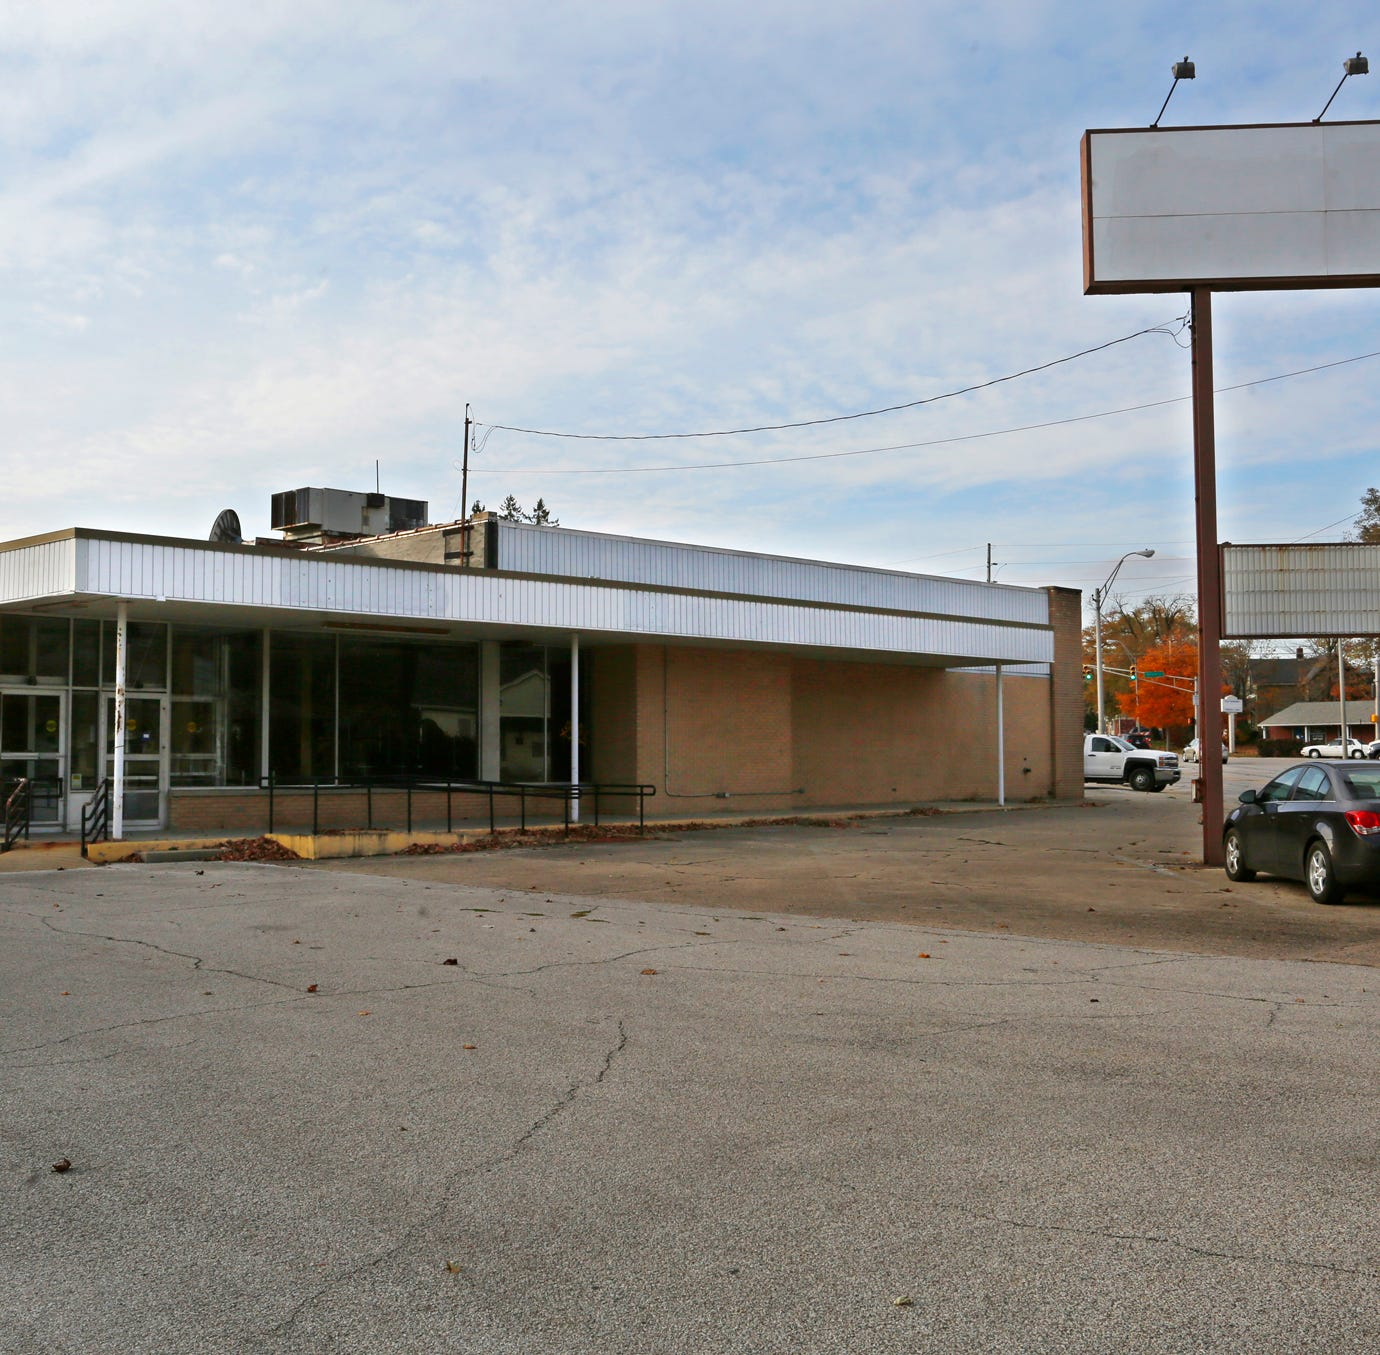 Days are numbered for former Osco store, will undergo demolition early April